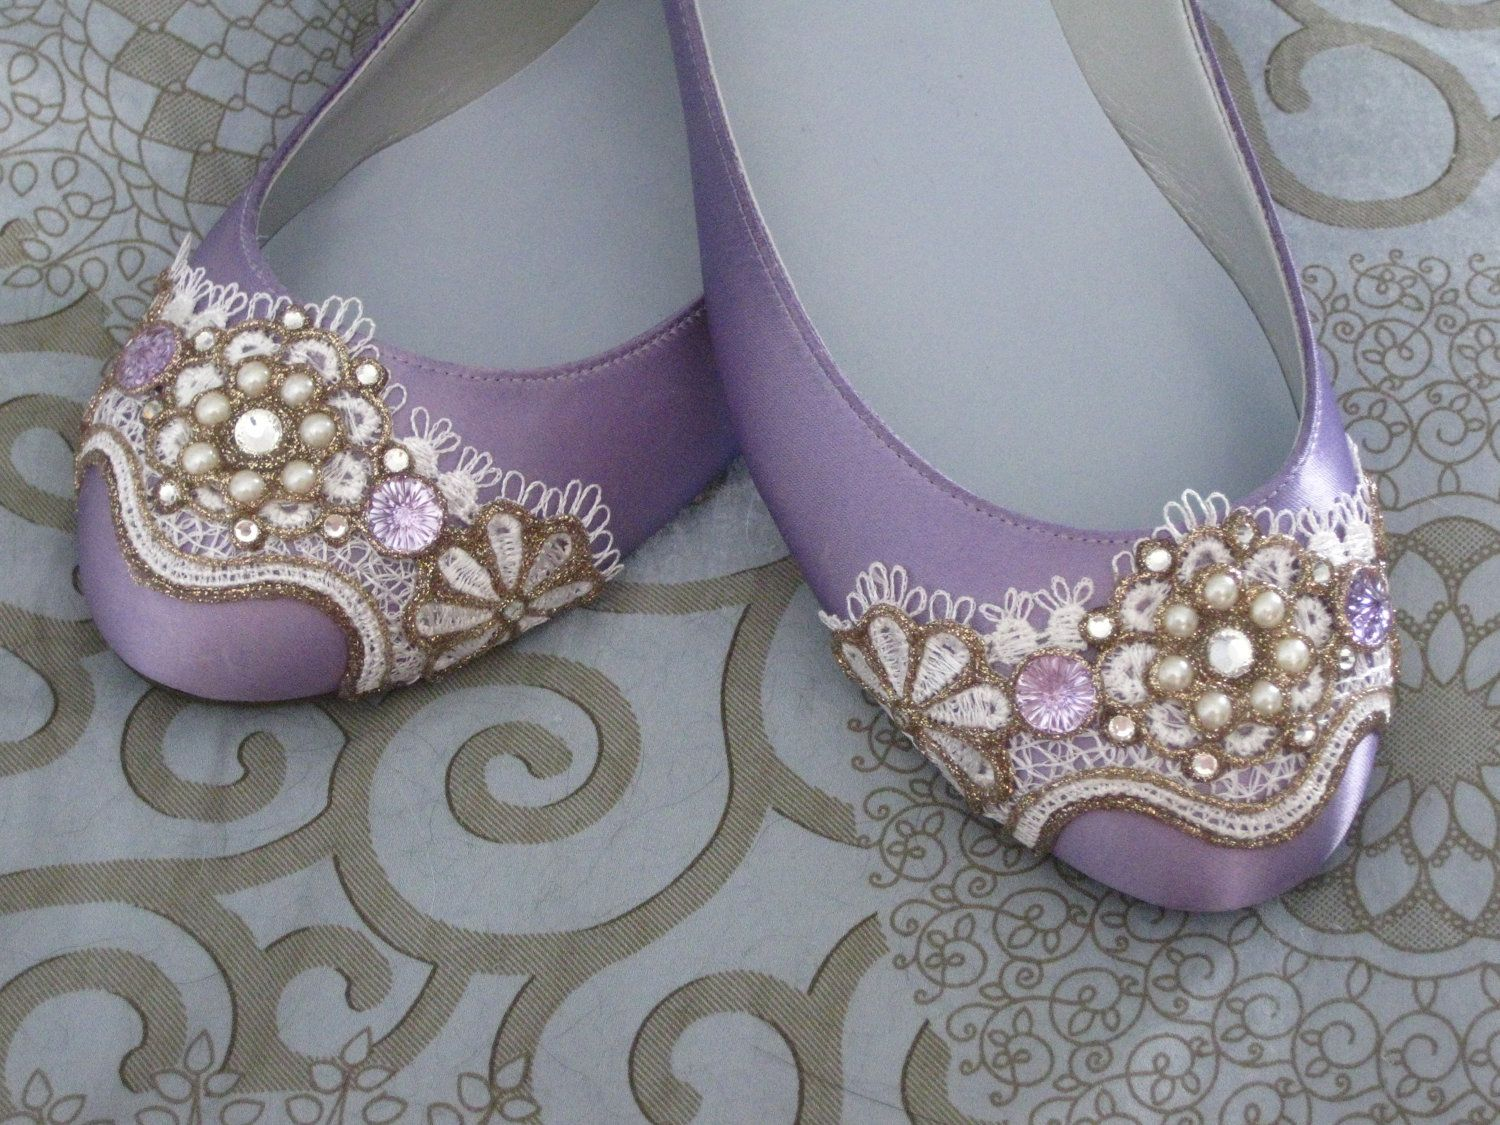 Sugarplum Fairy Ballet Flats Wedding Shoes